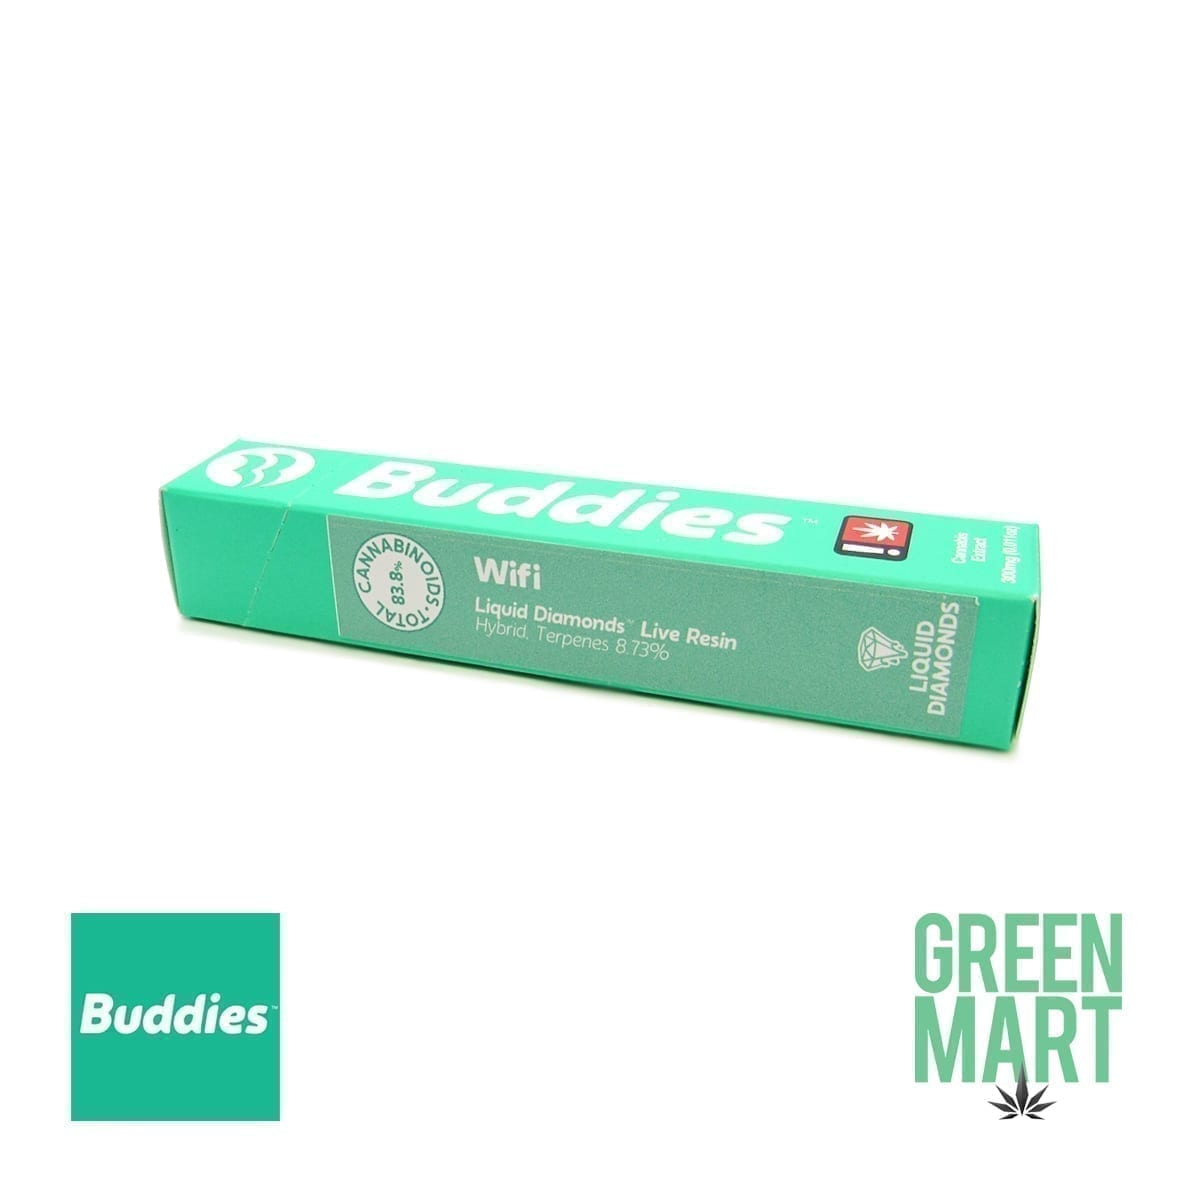 Buddies Brand Disposable Vape - WiFi